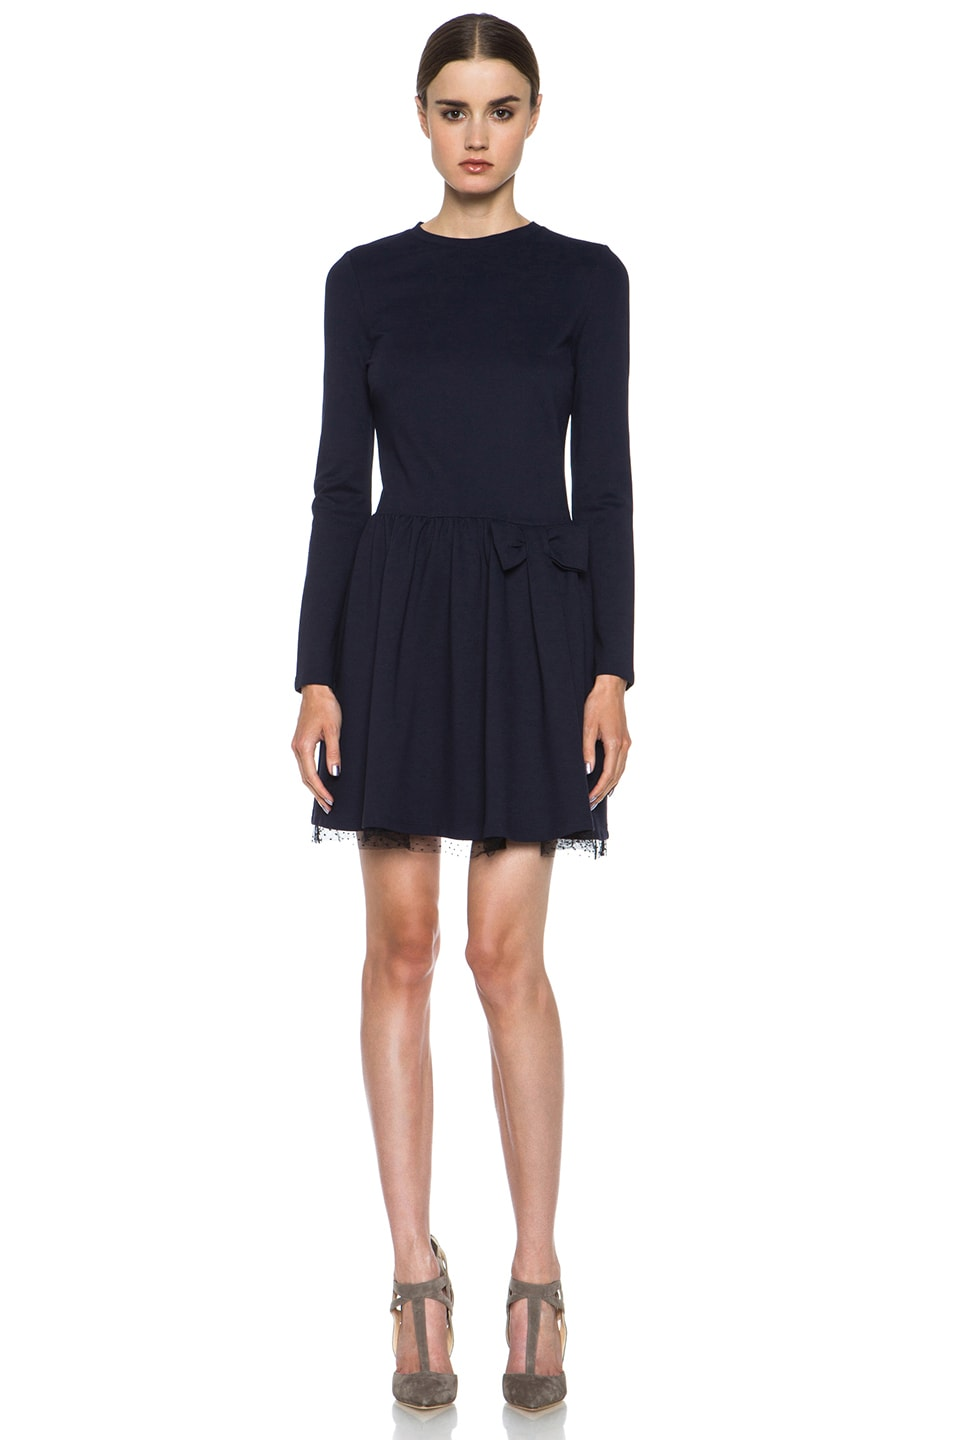 Image 1 of Red Valentino Dress in Navy